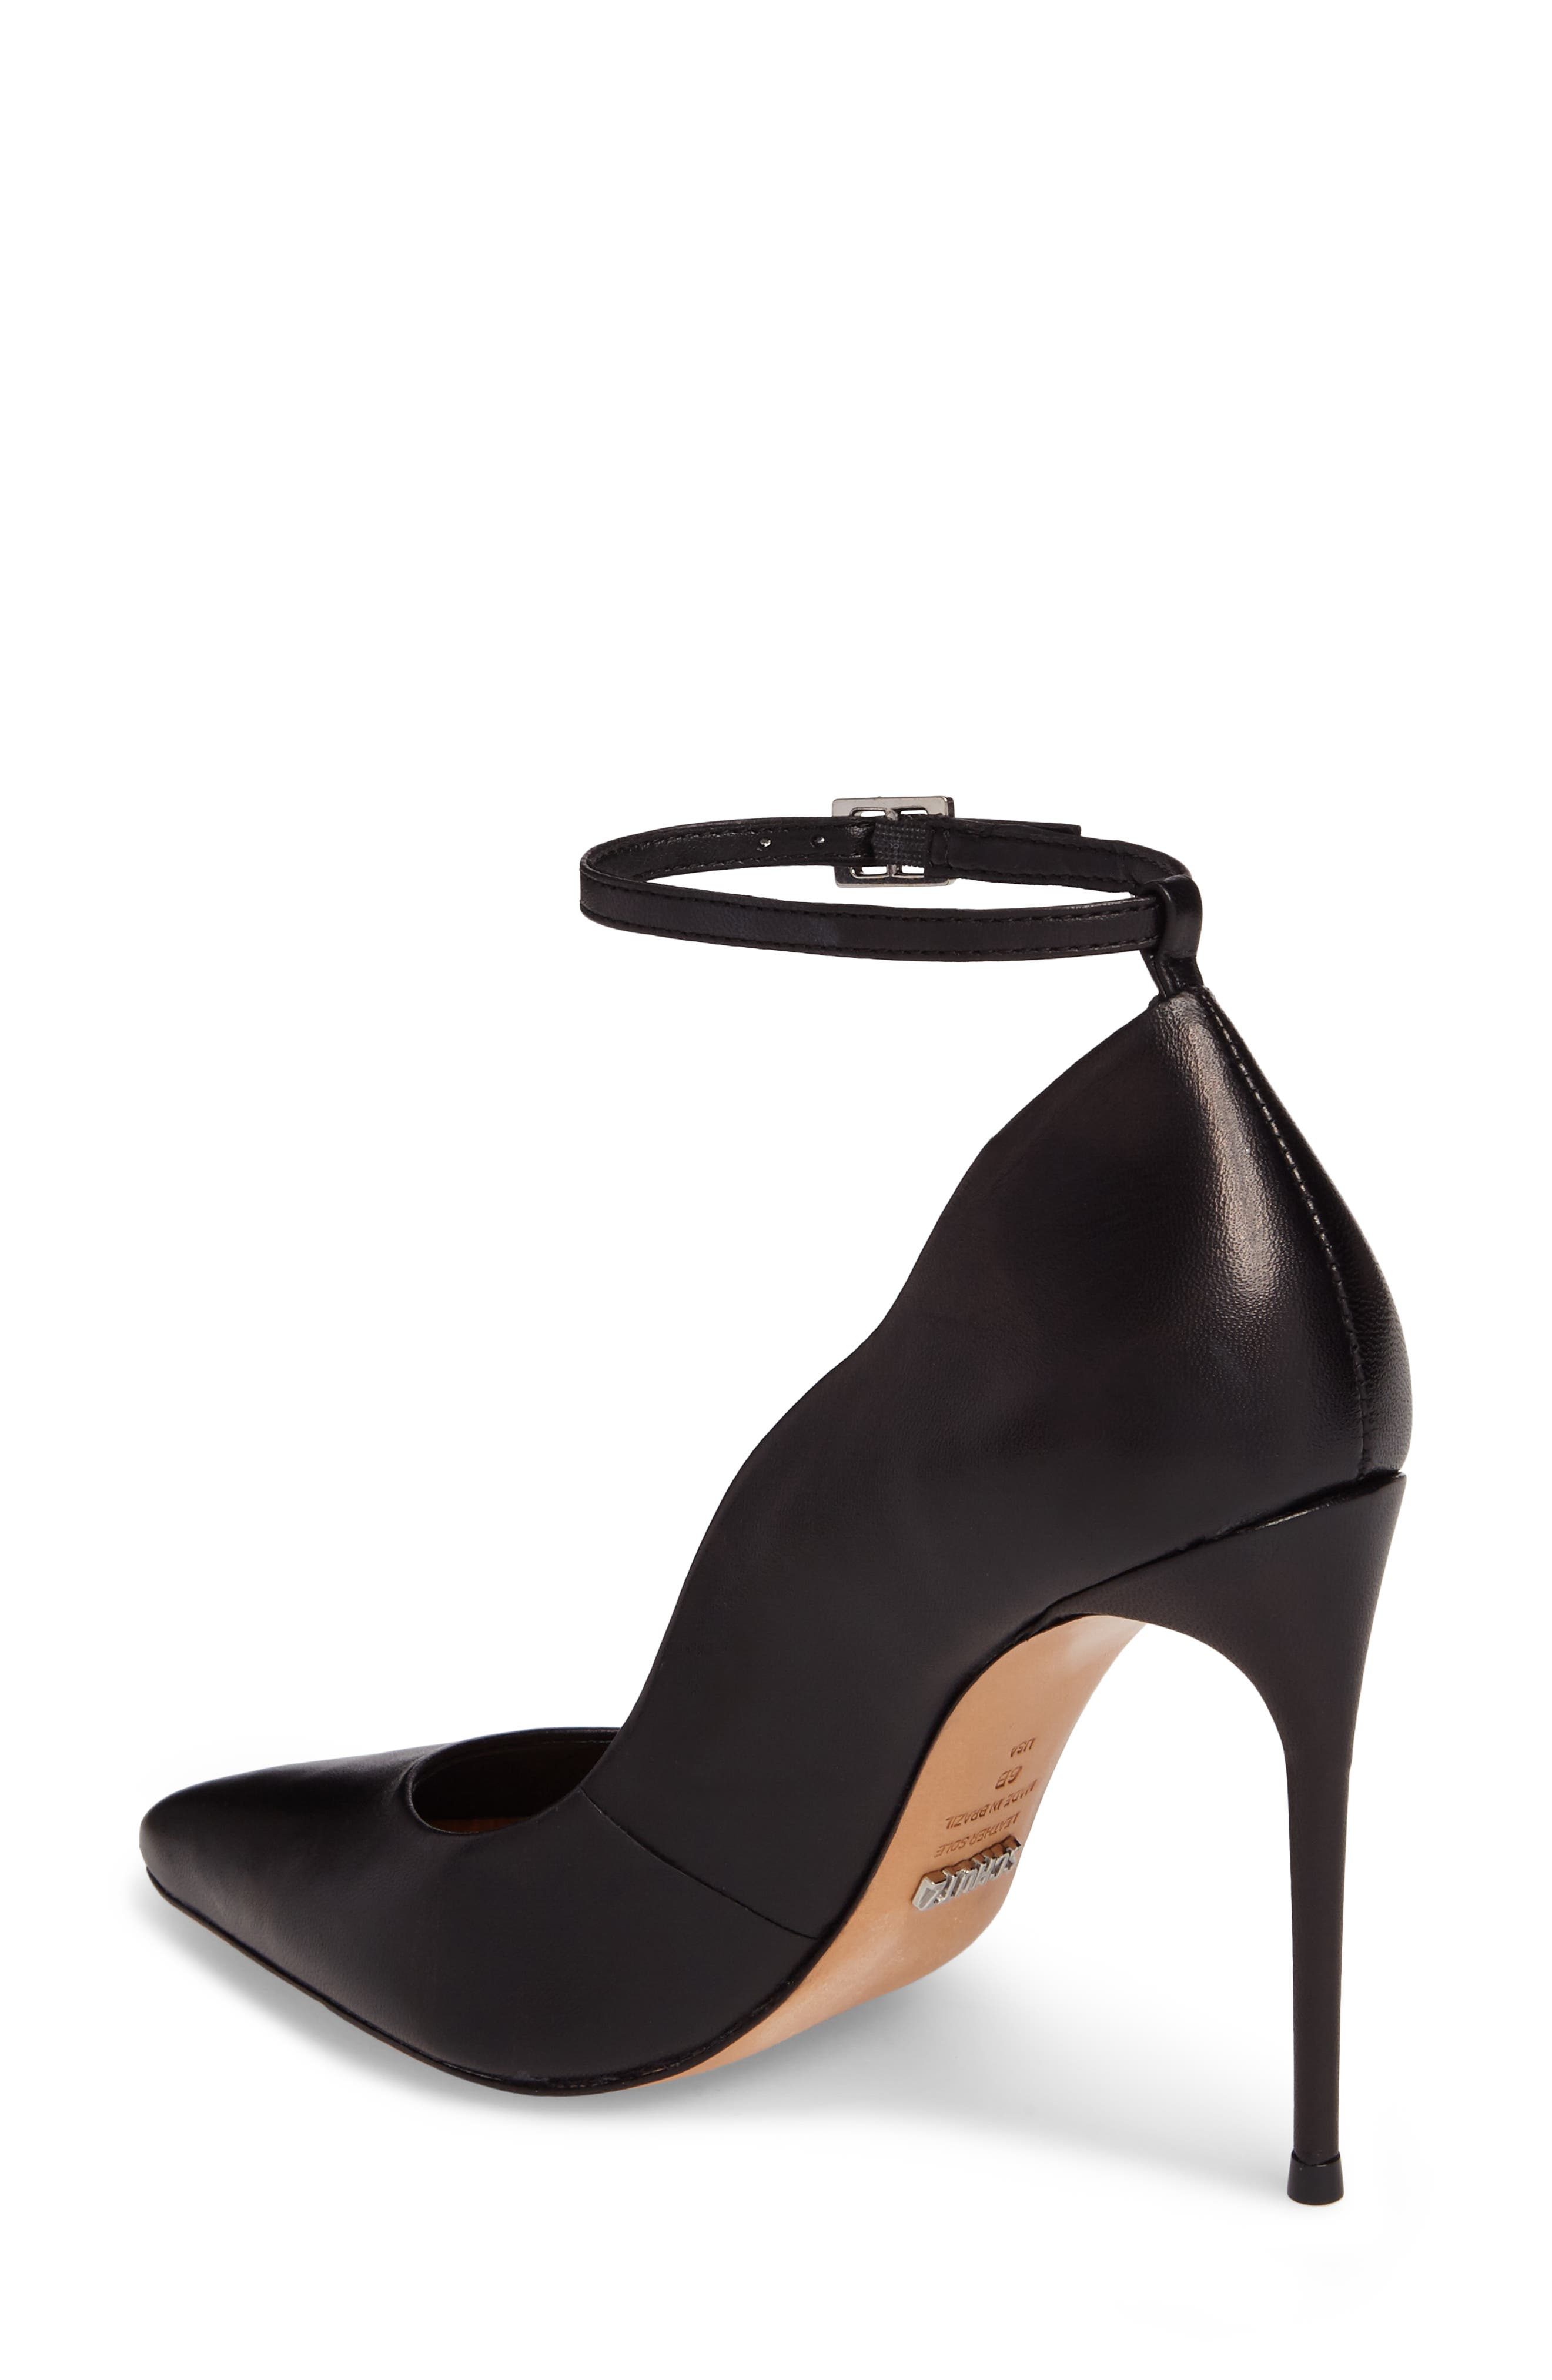 Thaynara Ankle Strap Pump,                             Alternate thumbnail 2, color,                             001